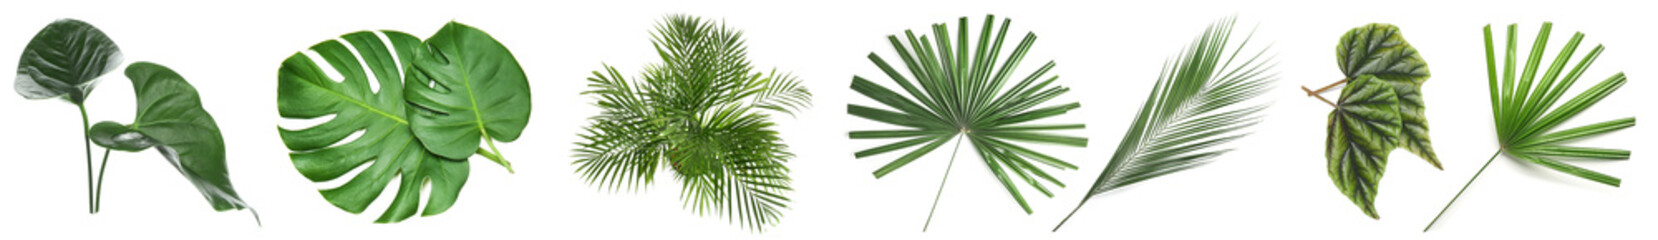 Spoed Fotobehang Bomen Set of green tropical leaves on white background